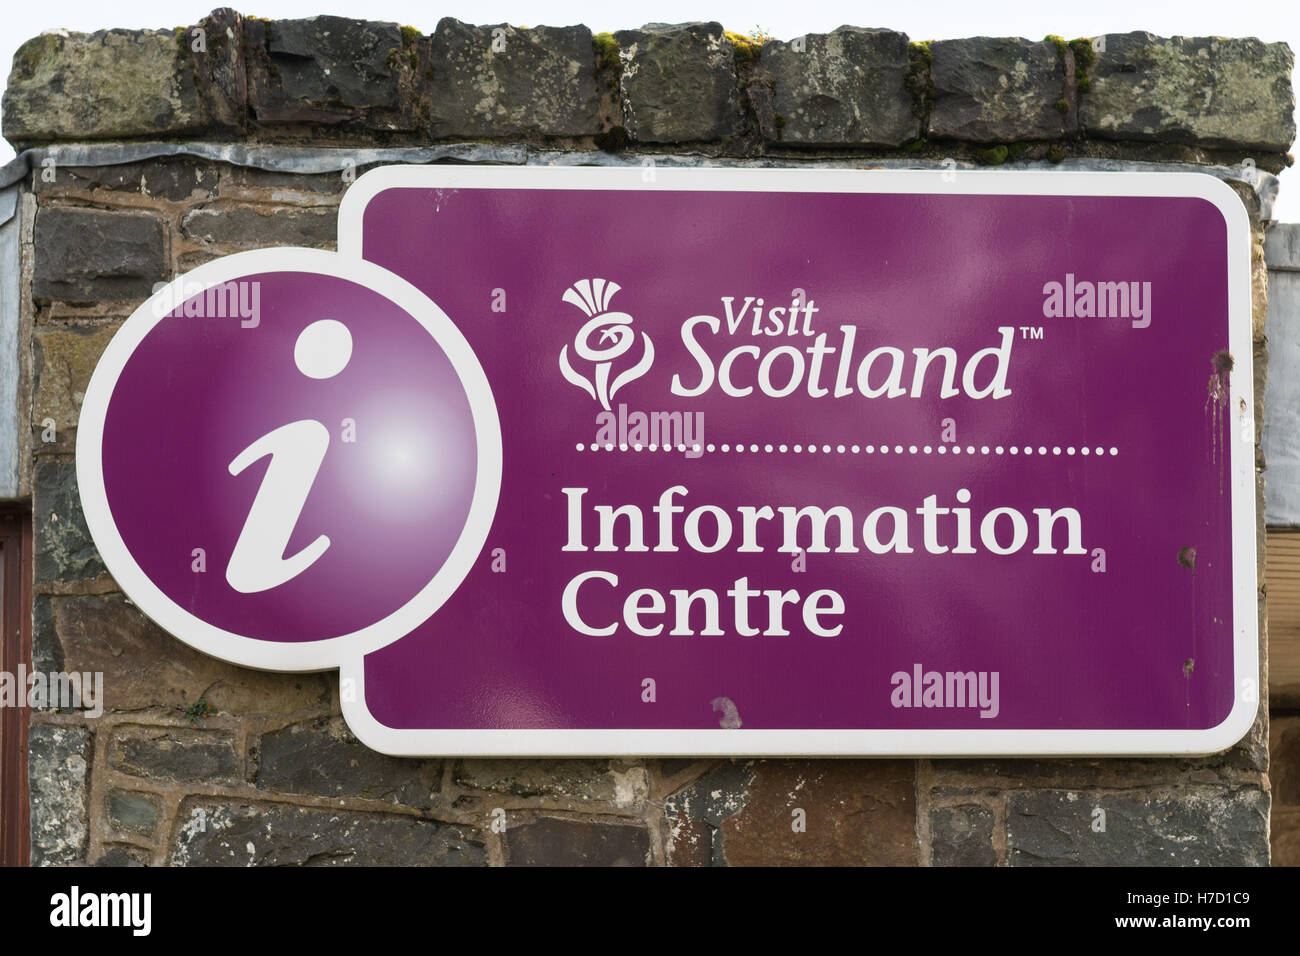 icentre - Visit Scotland Information Centre sign - Stock Image